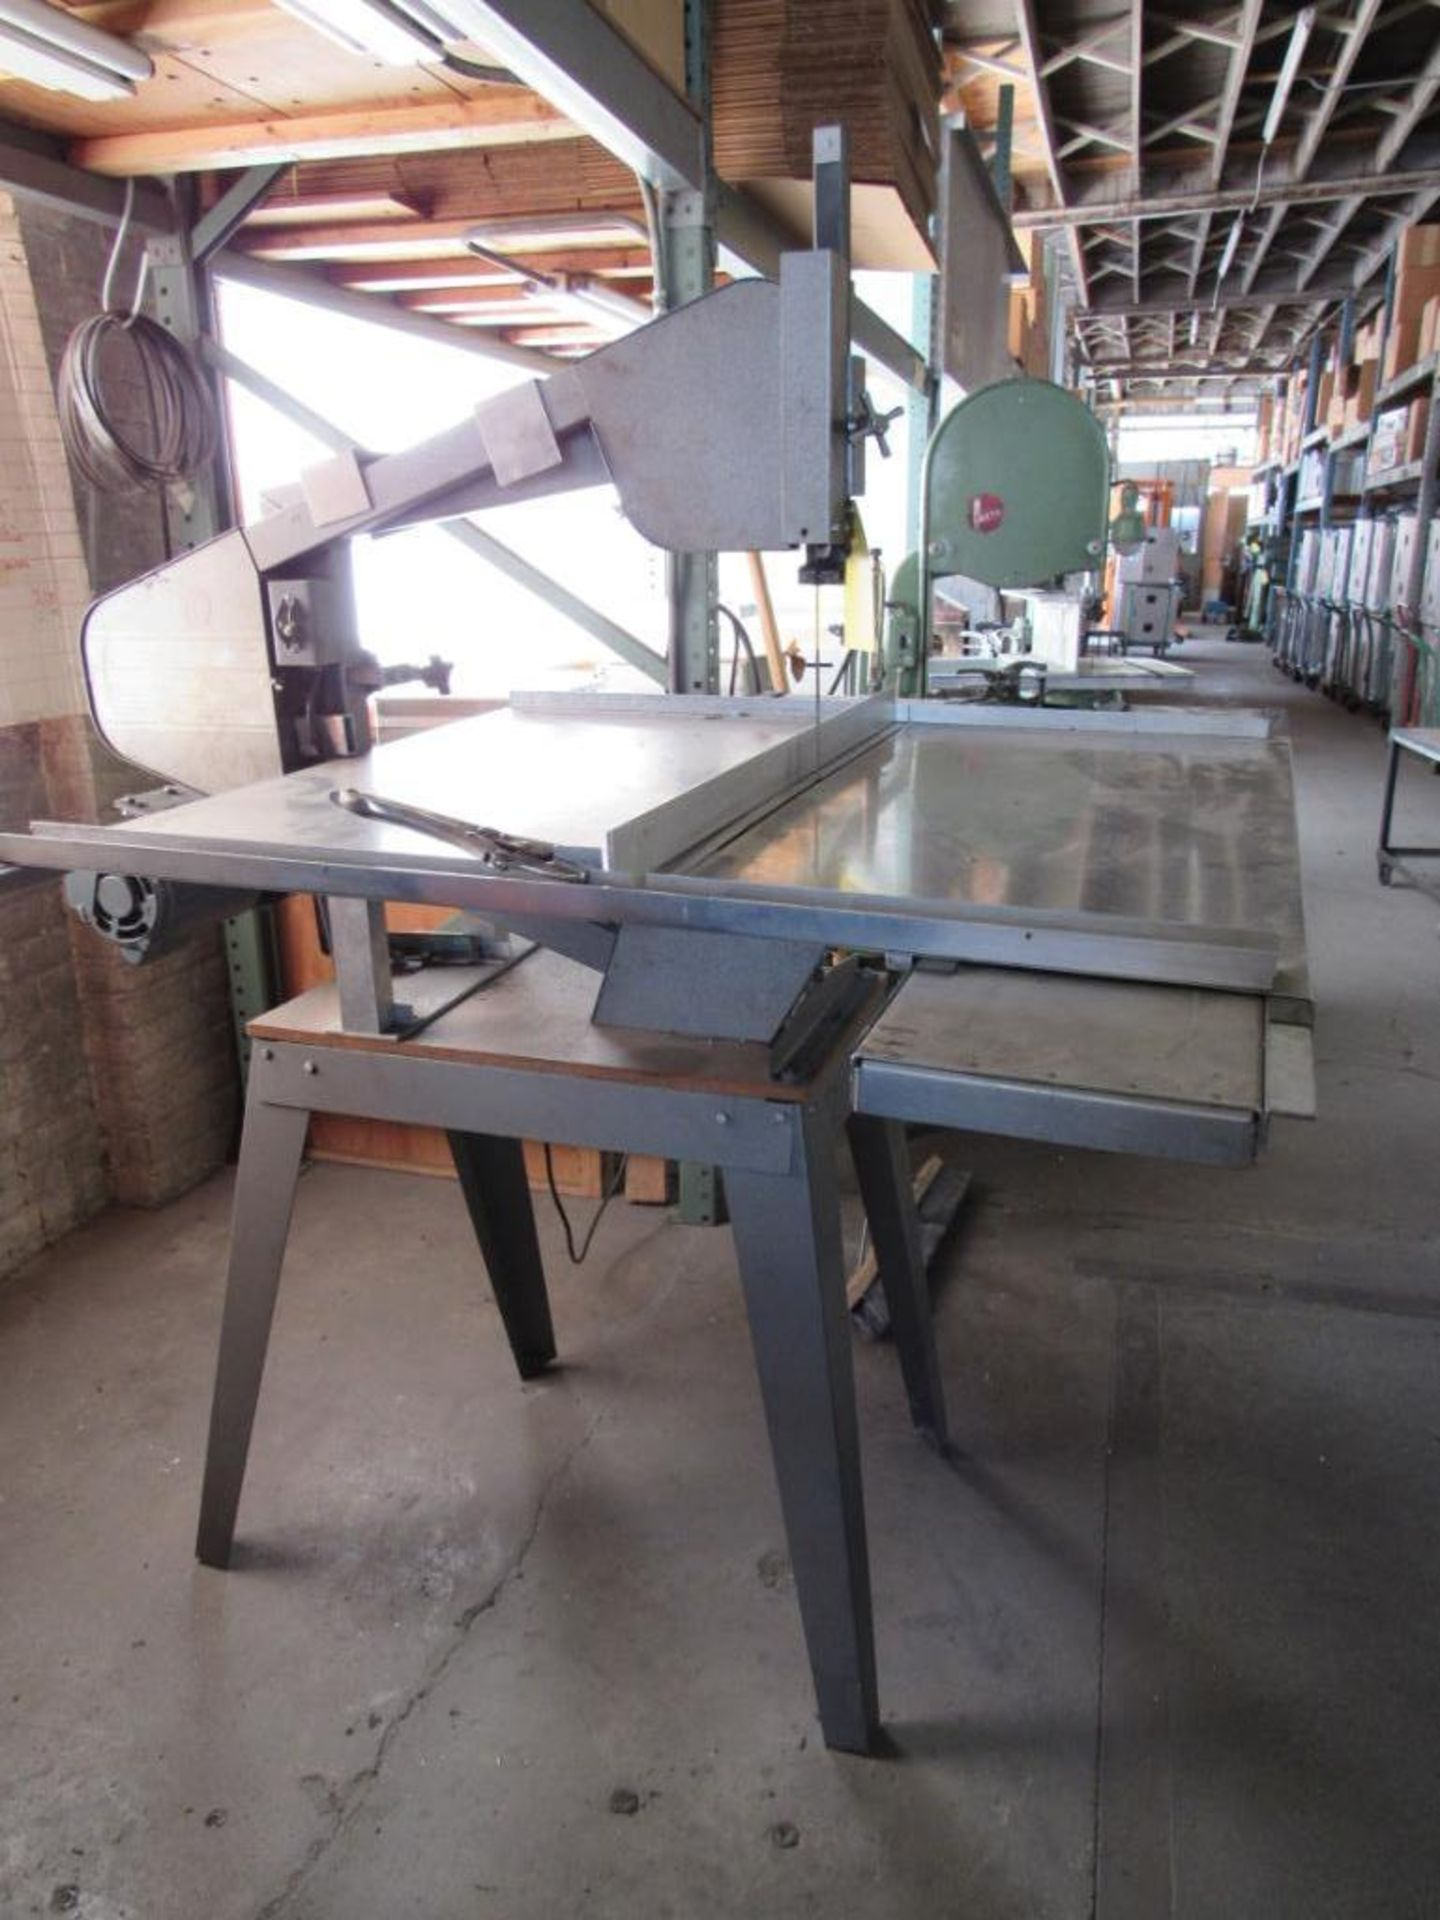 Lot 88 - Dupli-Carver 24 in. Vertical Foam Rubber Band Saw, 9 in. Cut, Sliding Table